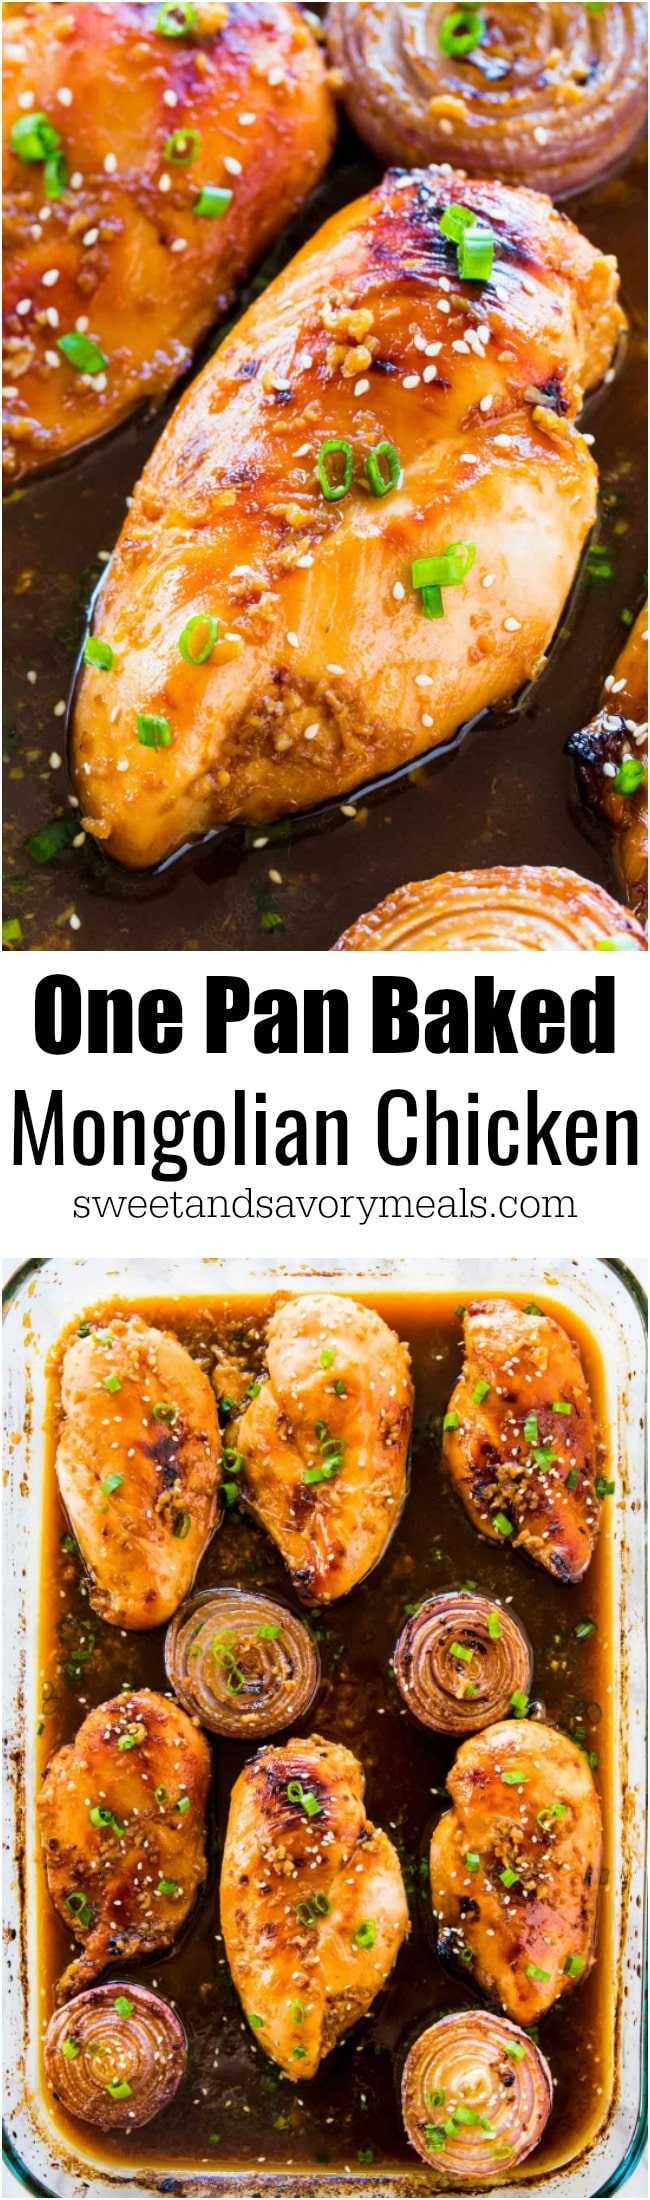 Baked Mongolian Chicken is the perfect combo of sweet and savory. A very easy dish, made in one pan and baked instead of fried.